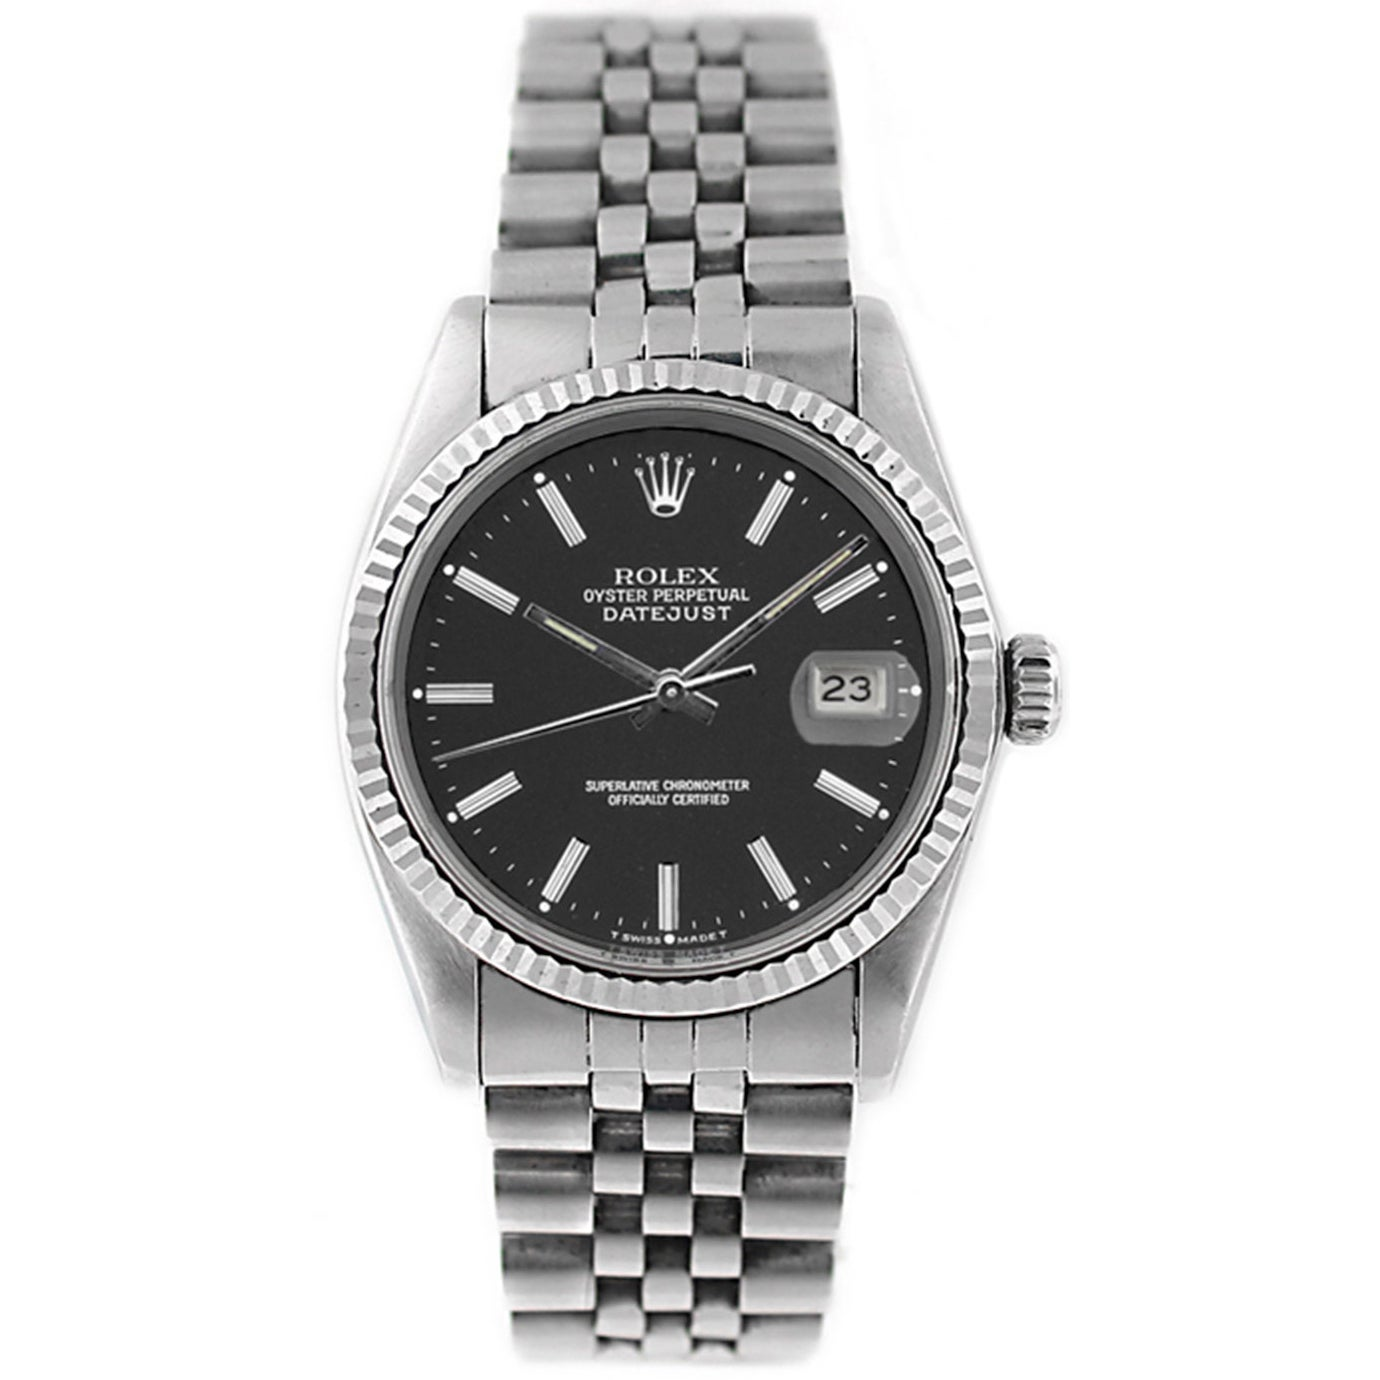 a0dcfd4bf12 Pre-Owned Rolex Men s Datejust 16014 Stainless Steel and White Gold Black  Stick Watch